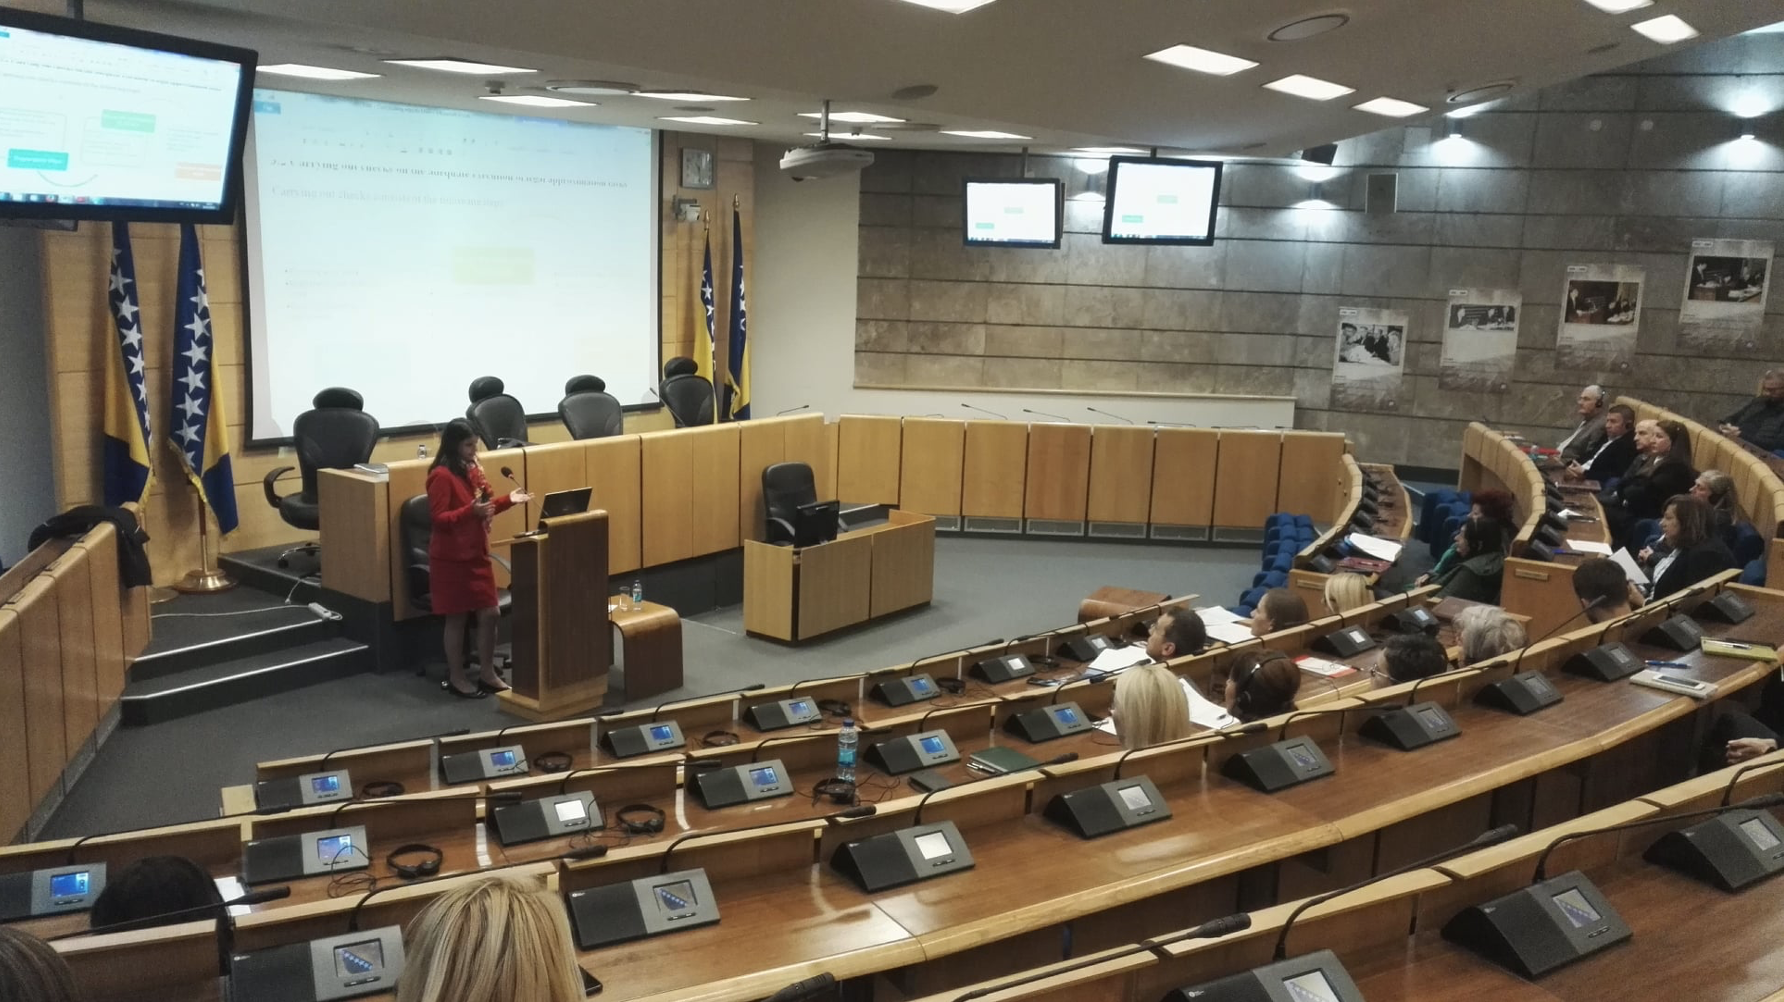 The Twinning Project facilitated coaching and on-the-job training events for all four BiH Parliaments staff